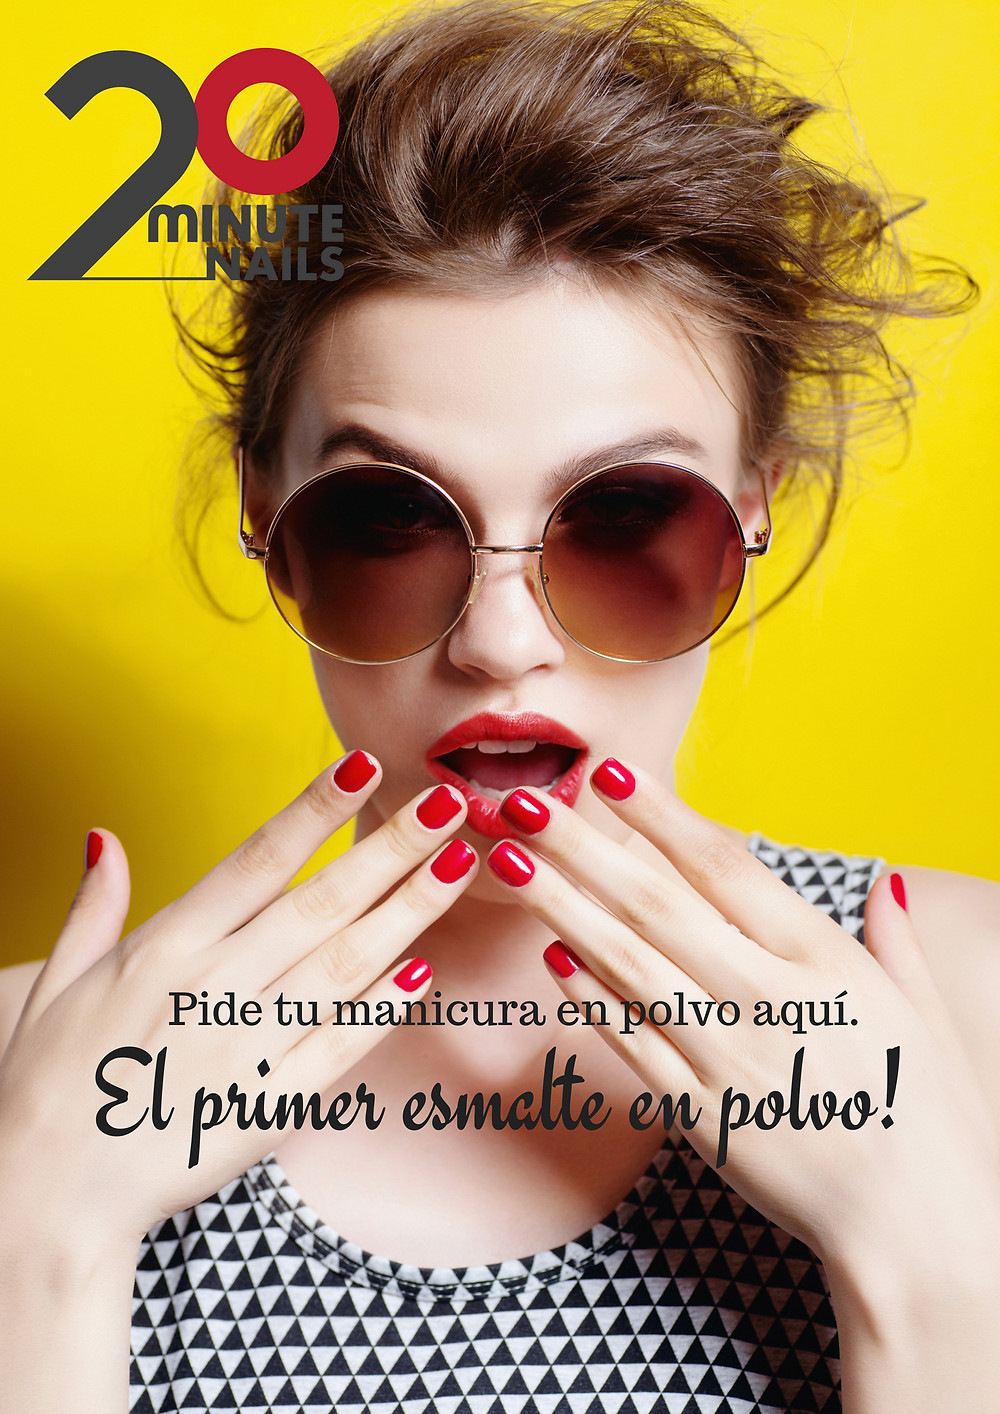 conference 20 minute nails barcelona